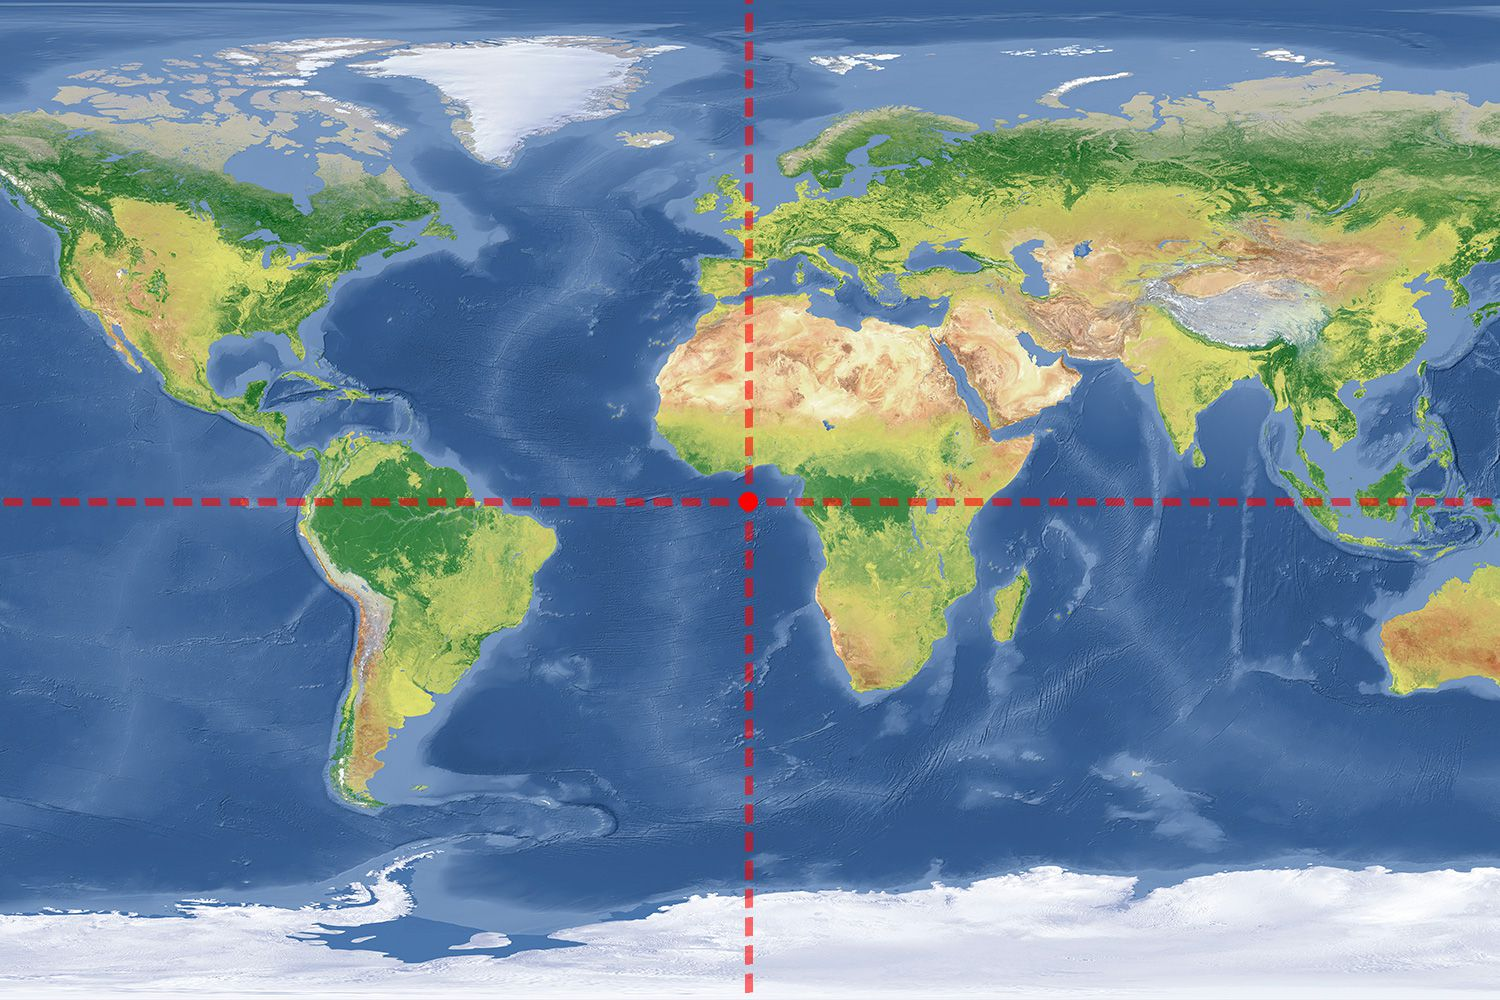 Where do 0 degrees latitude and longitude intersect gumiabroncs Gallery